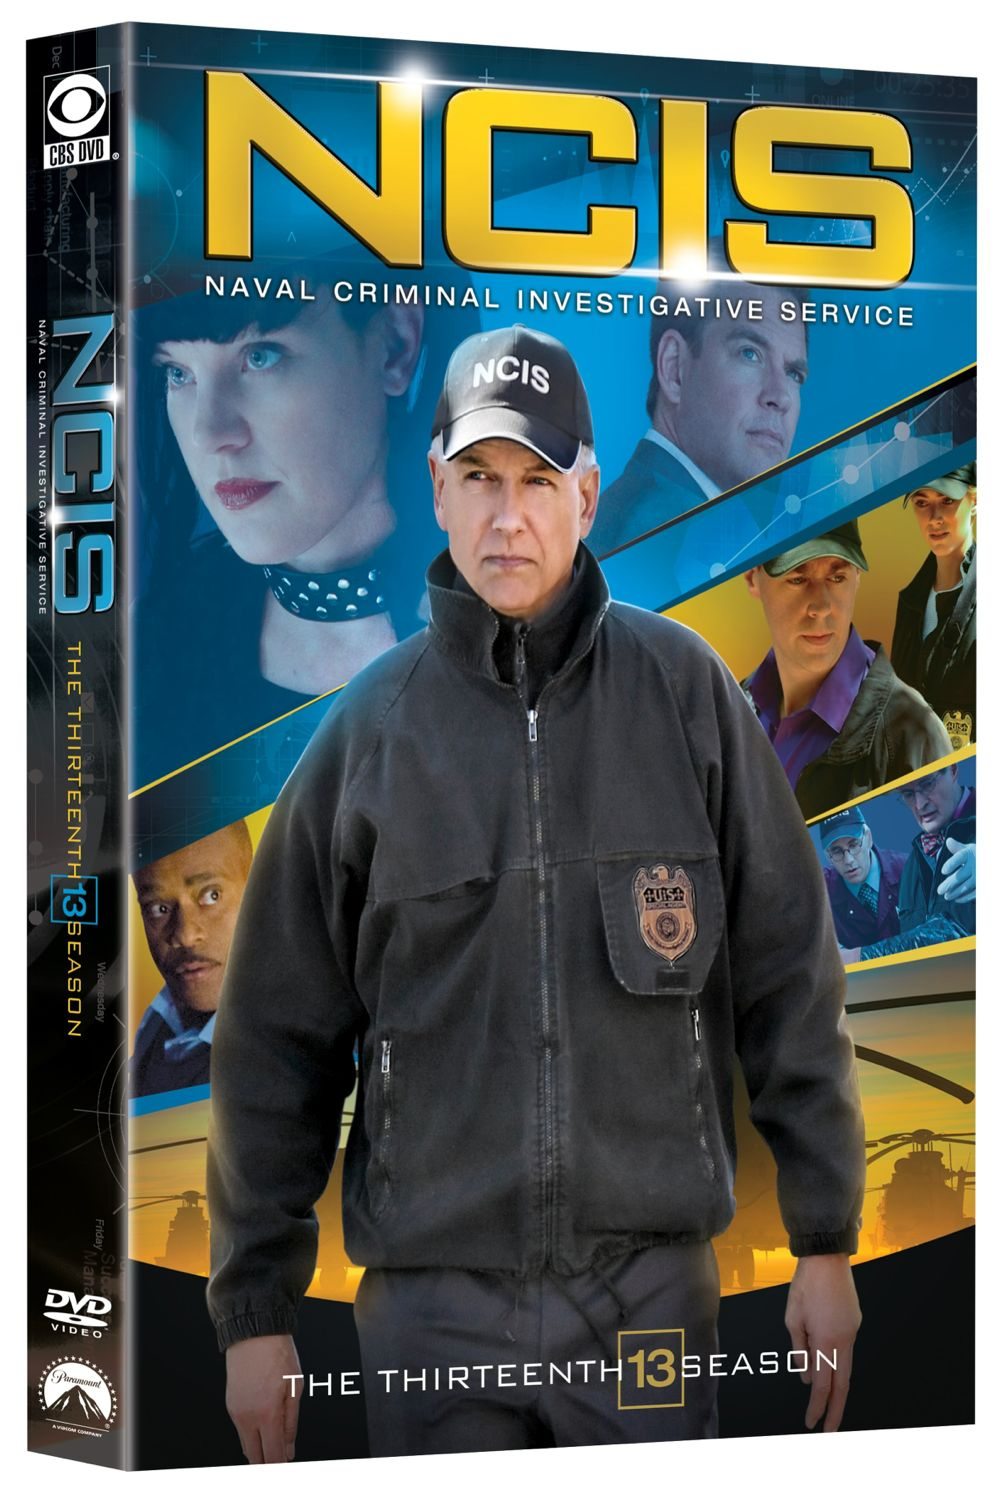 NCIS Season 13 DVD Cover 3D